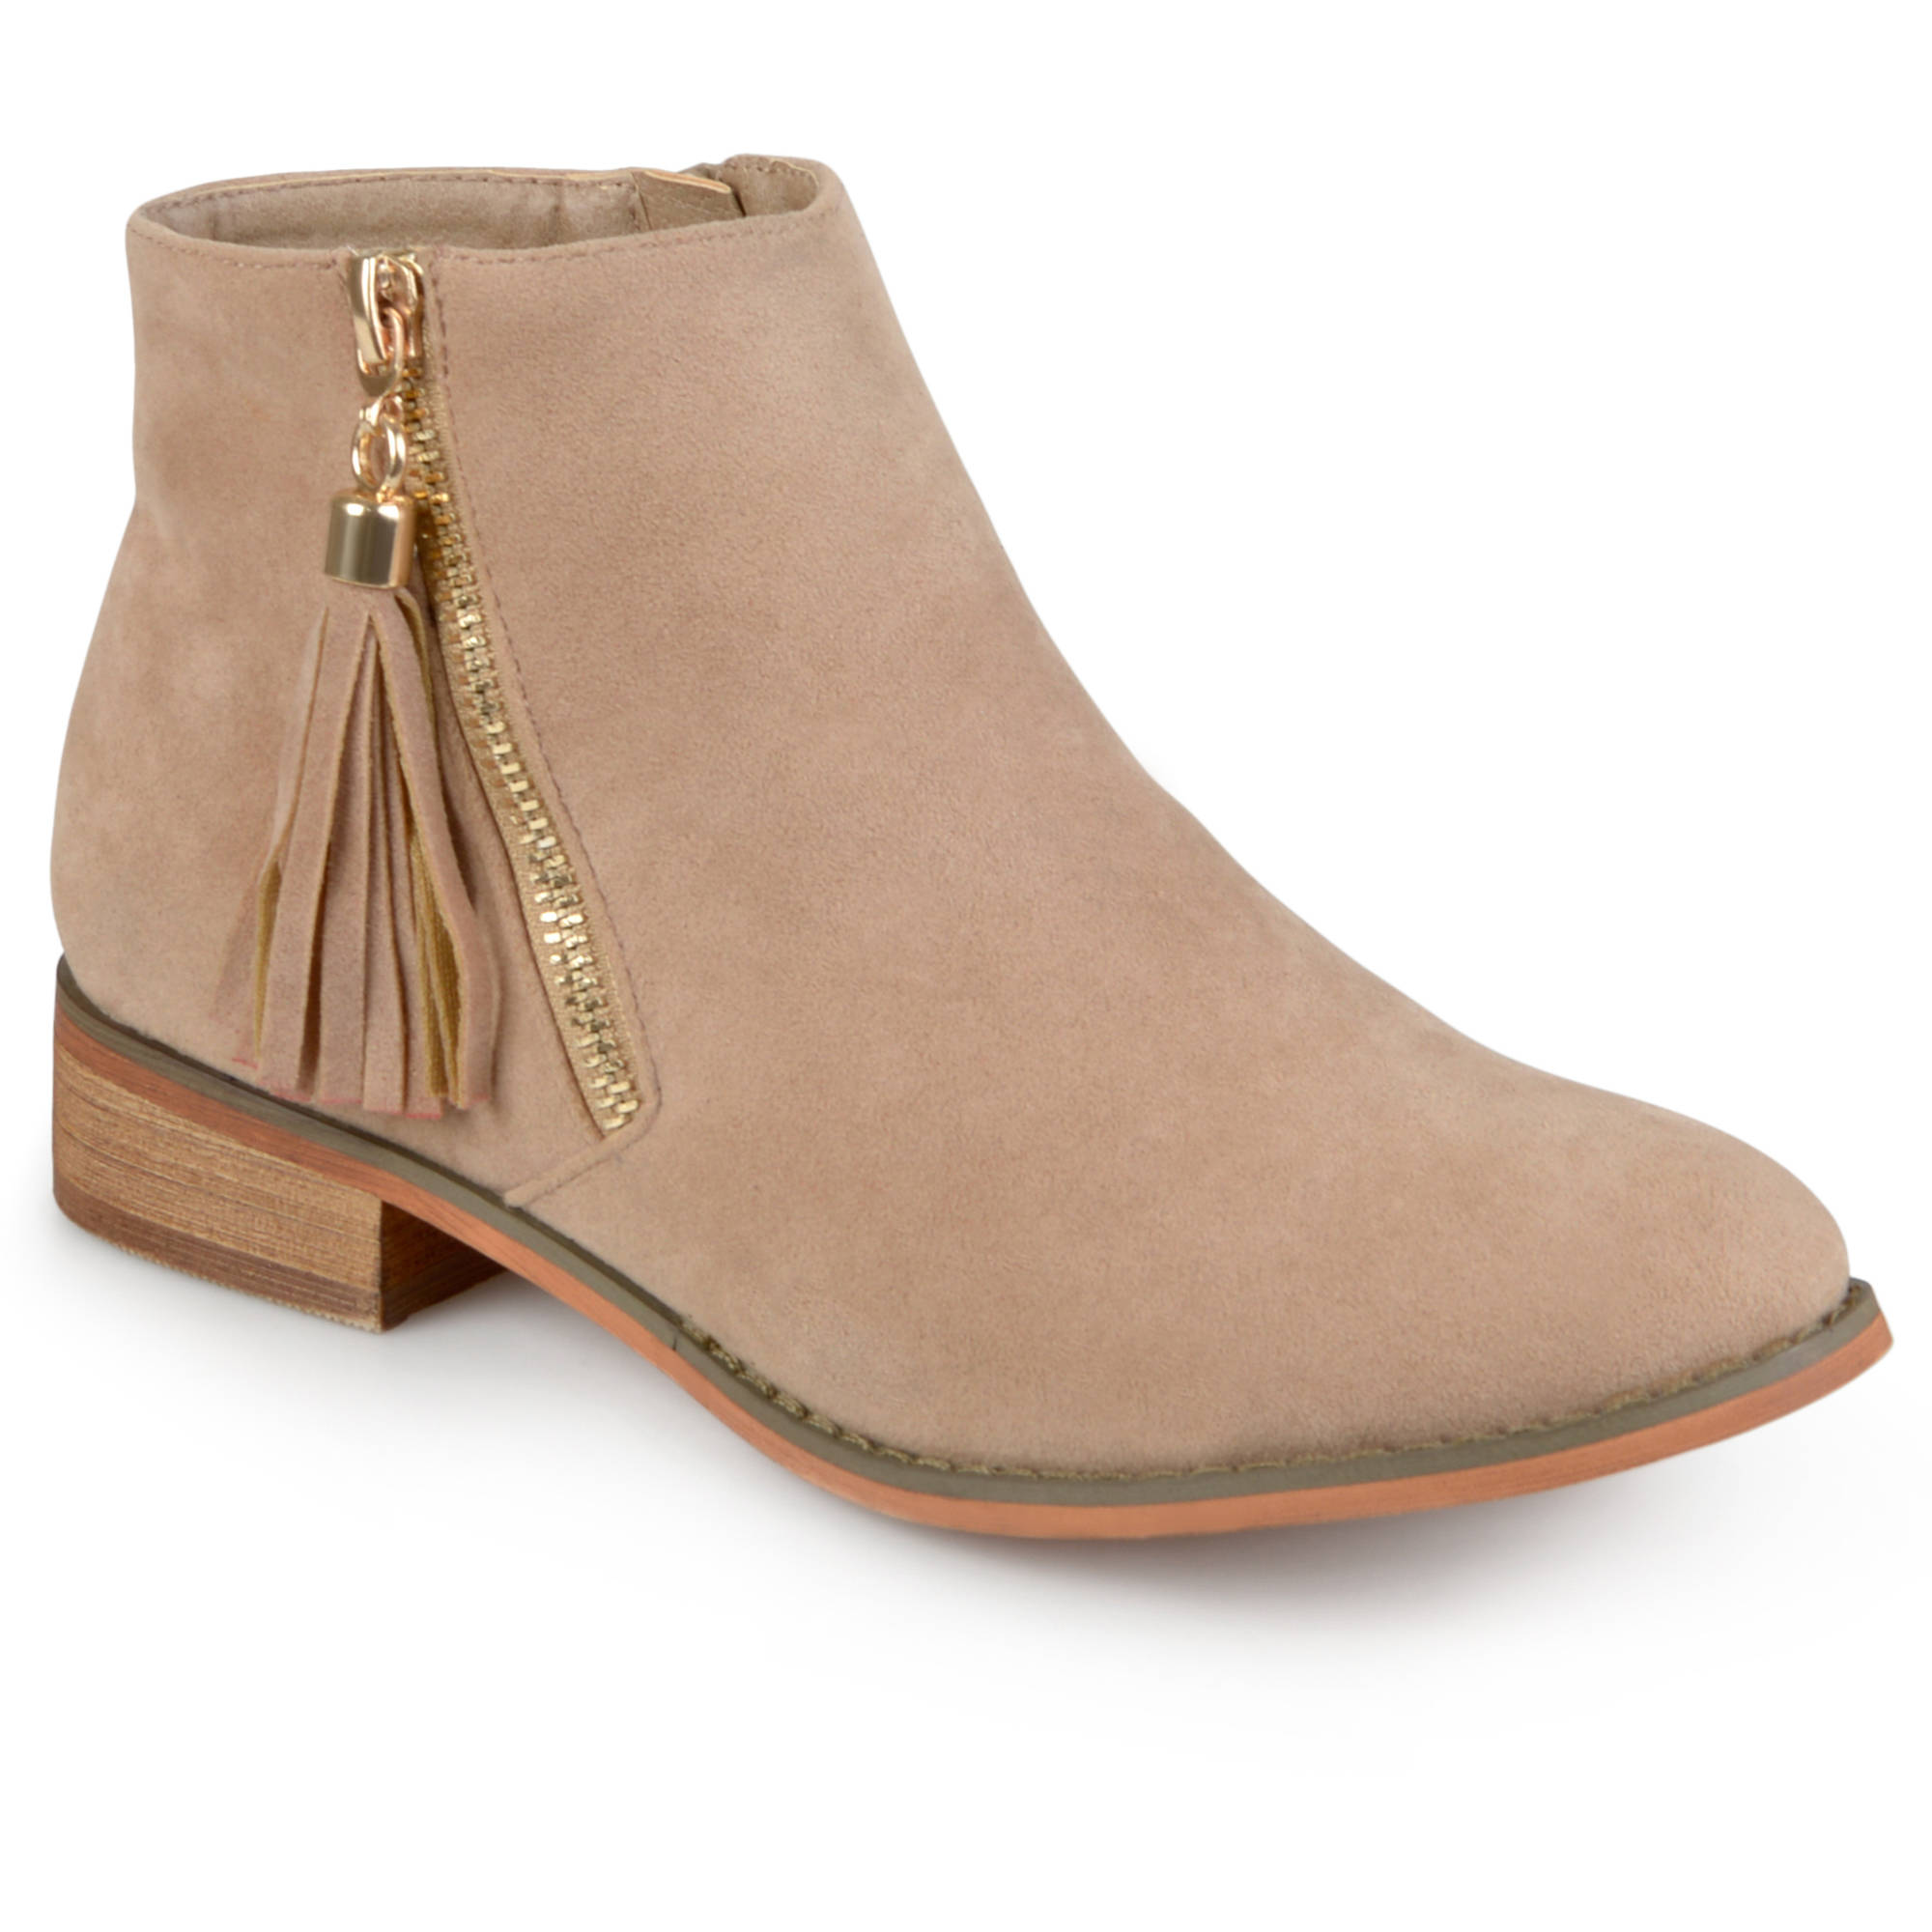 Brinley Co. Womens Side Zip Faux Suede Ankle Boots - Walmart.com